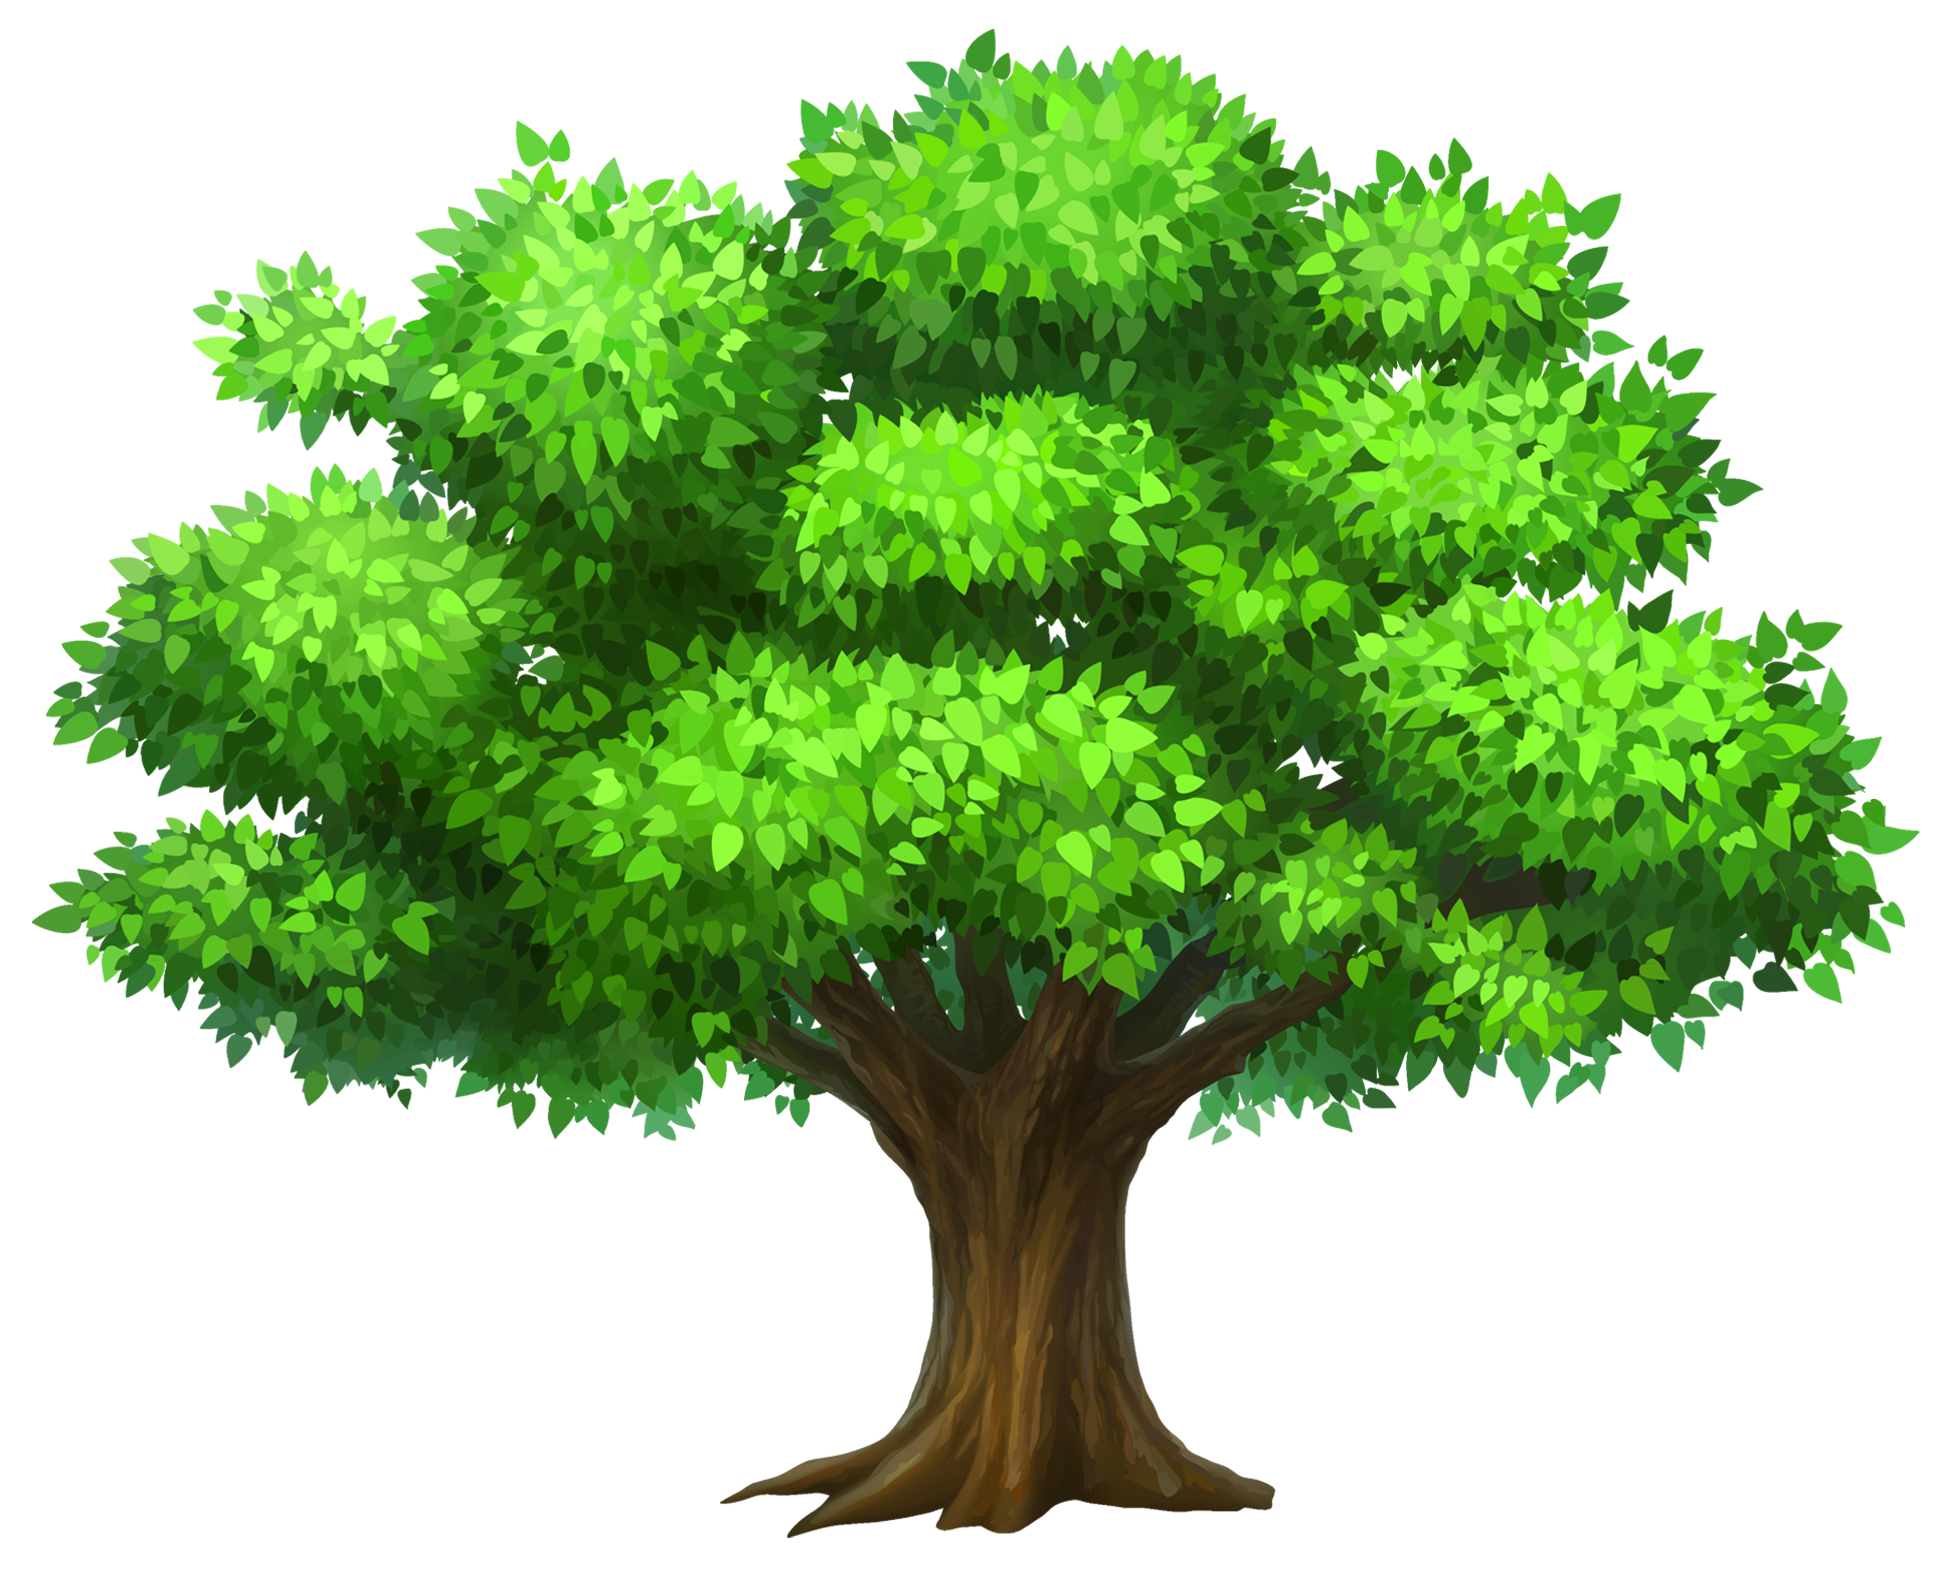 Free Oak Tree Clipart of Oak tree tree clipart clipart image for your  personal projects, presentations or web designs.